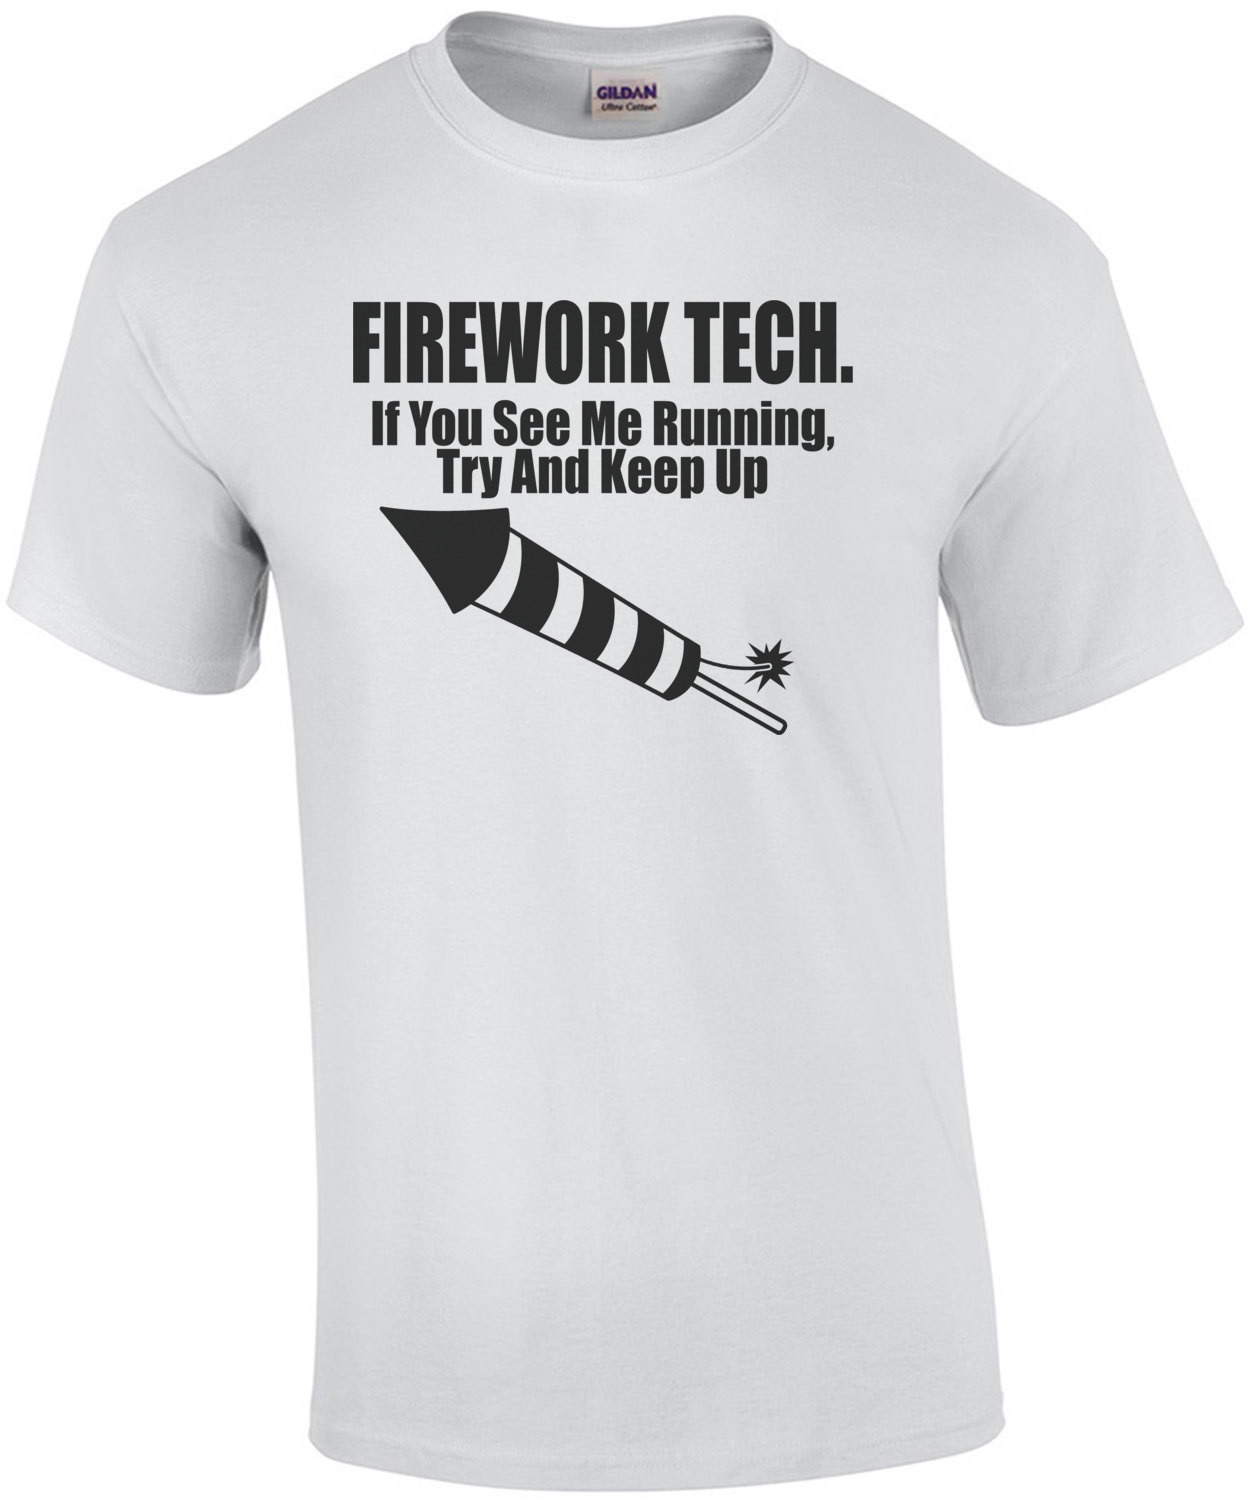 Firework Tech If You See Me Running Try And Keep Up T-Shirt